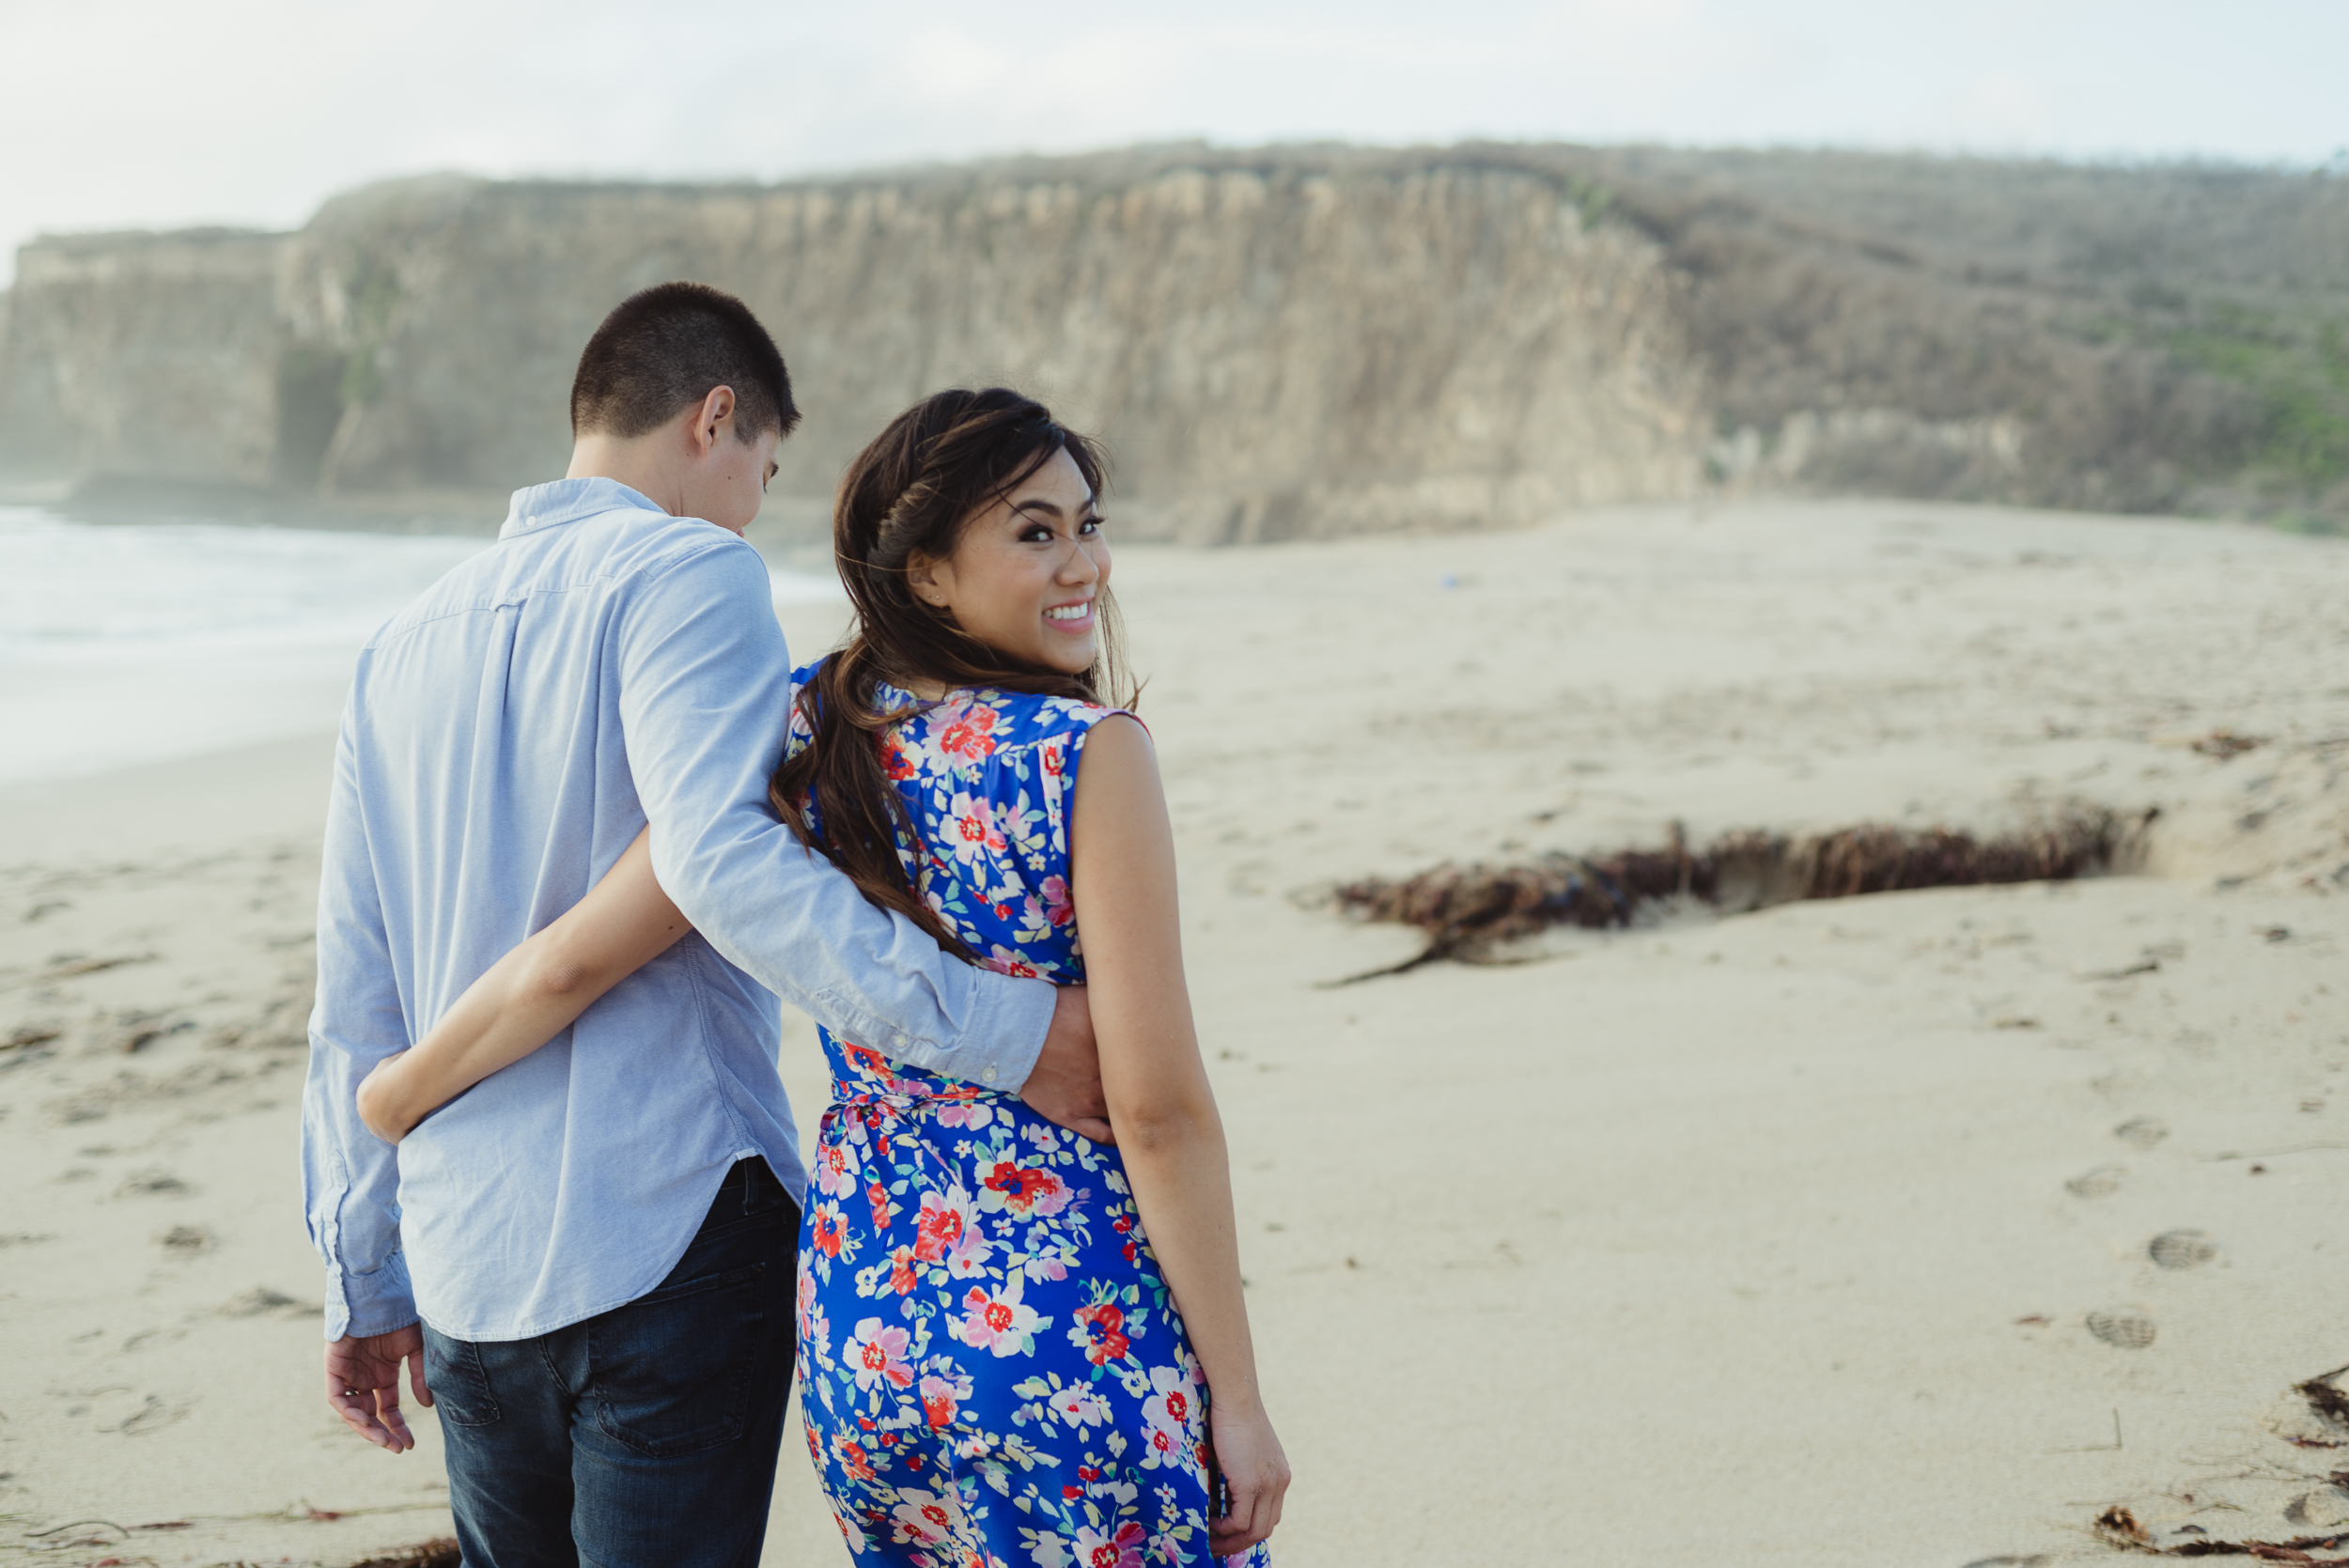 santa-cruz-boardwalk-beach-engagement-vivianchen-10.jpg